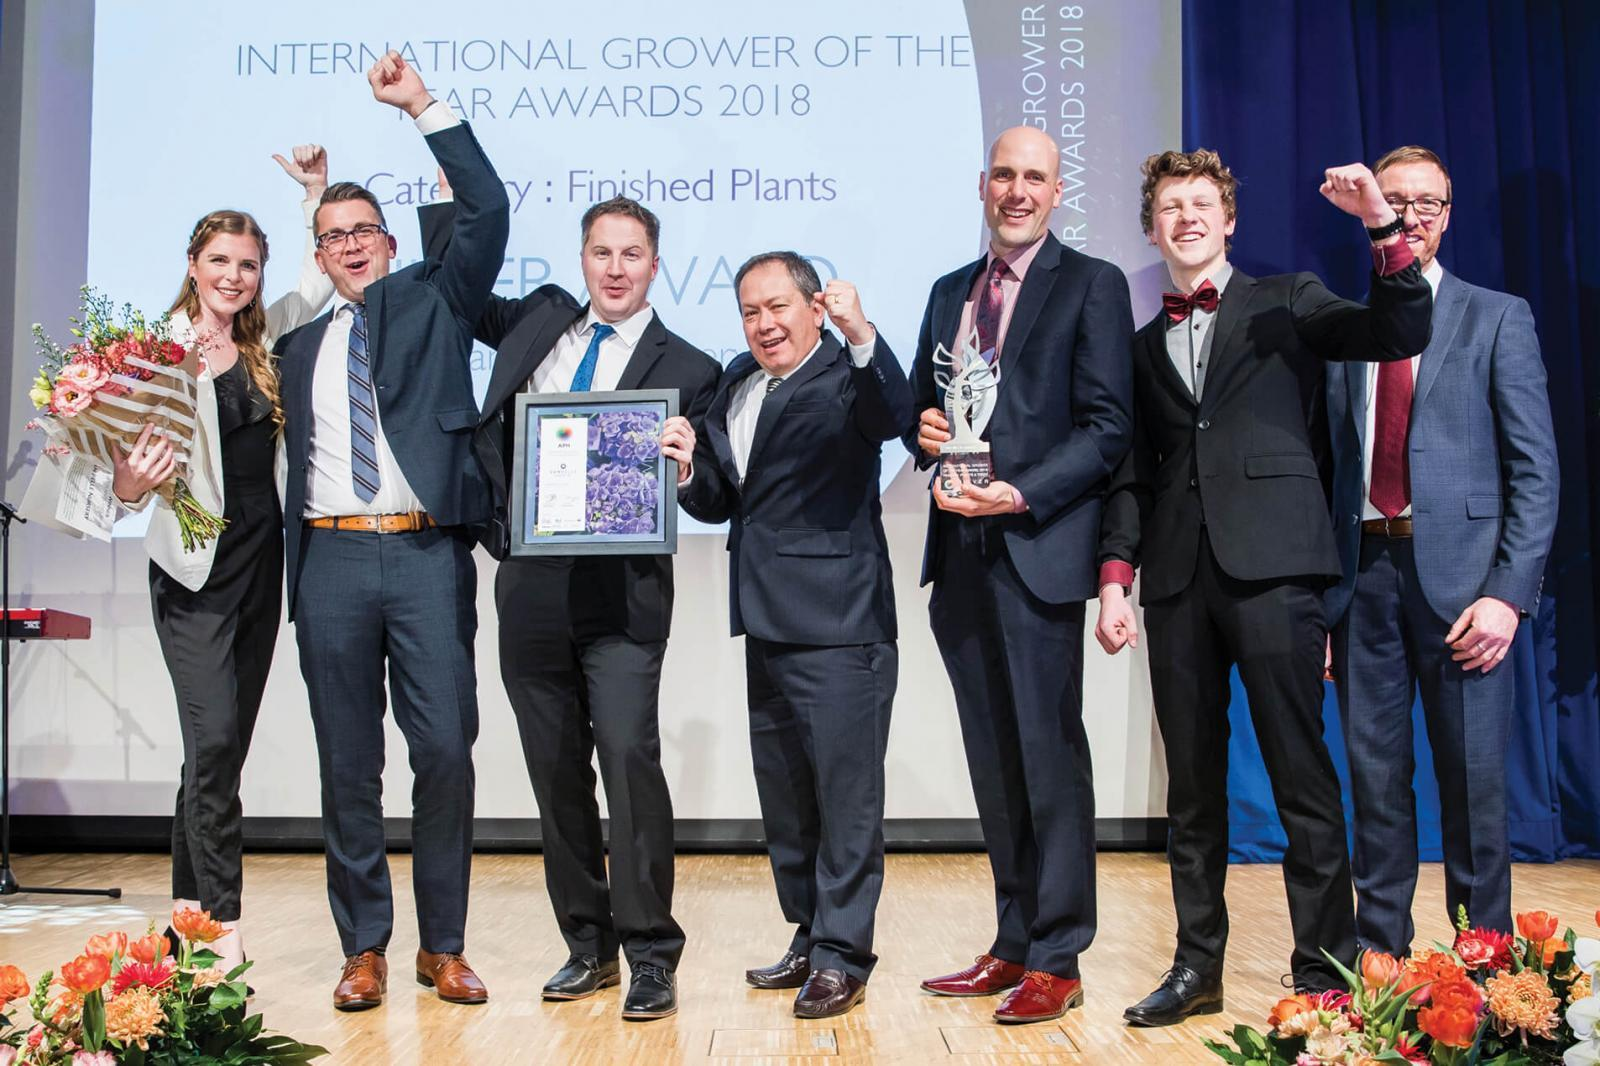 Van Belle Nursery nets two international awards